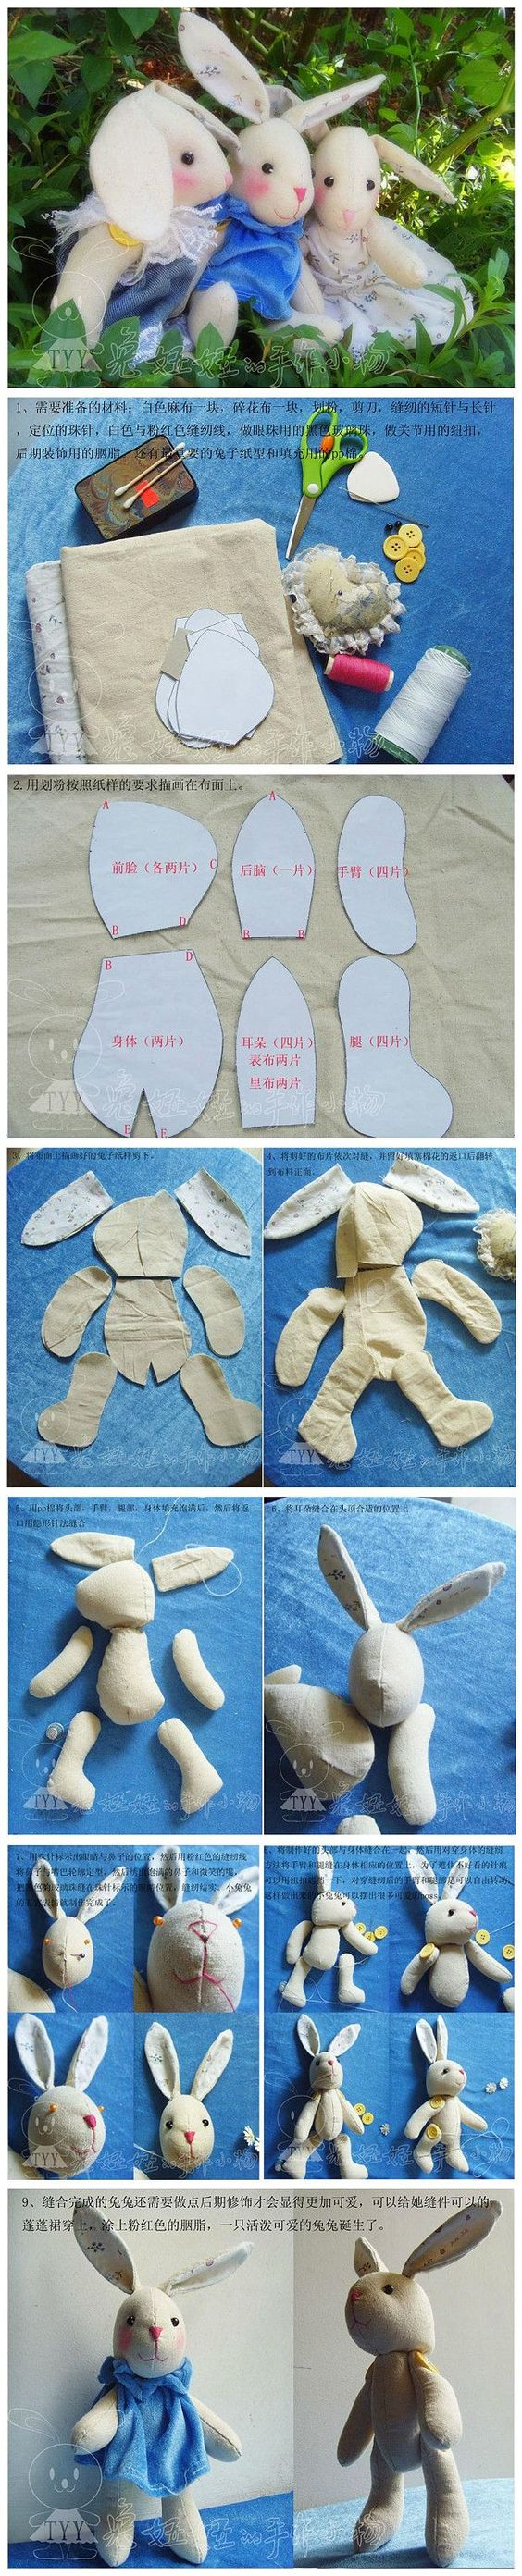 chinese bunny tutorial